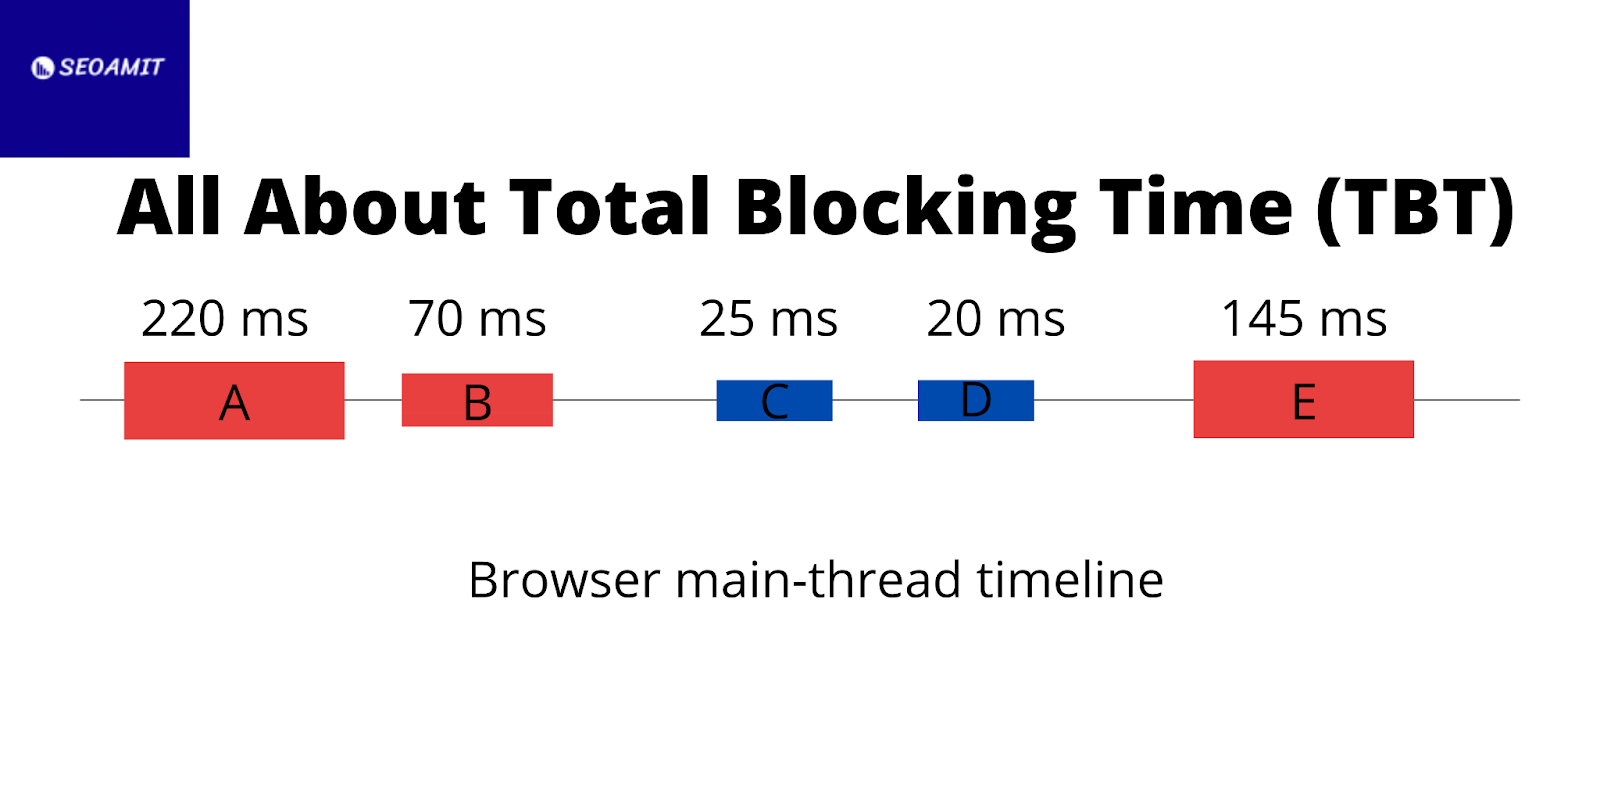 This image shows the all about total blocking time.